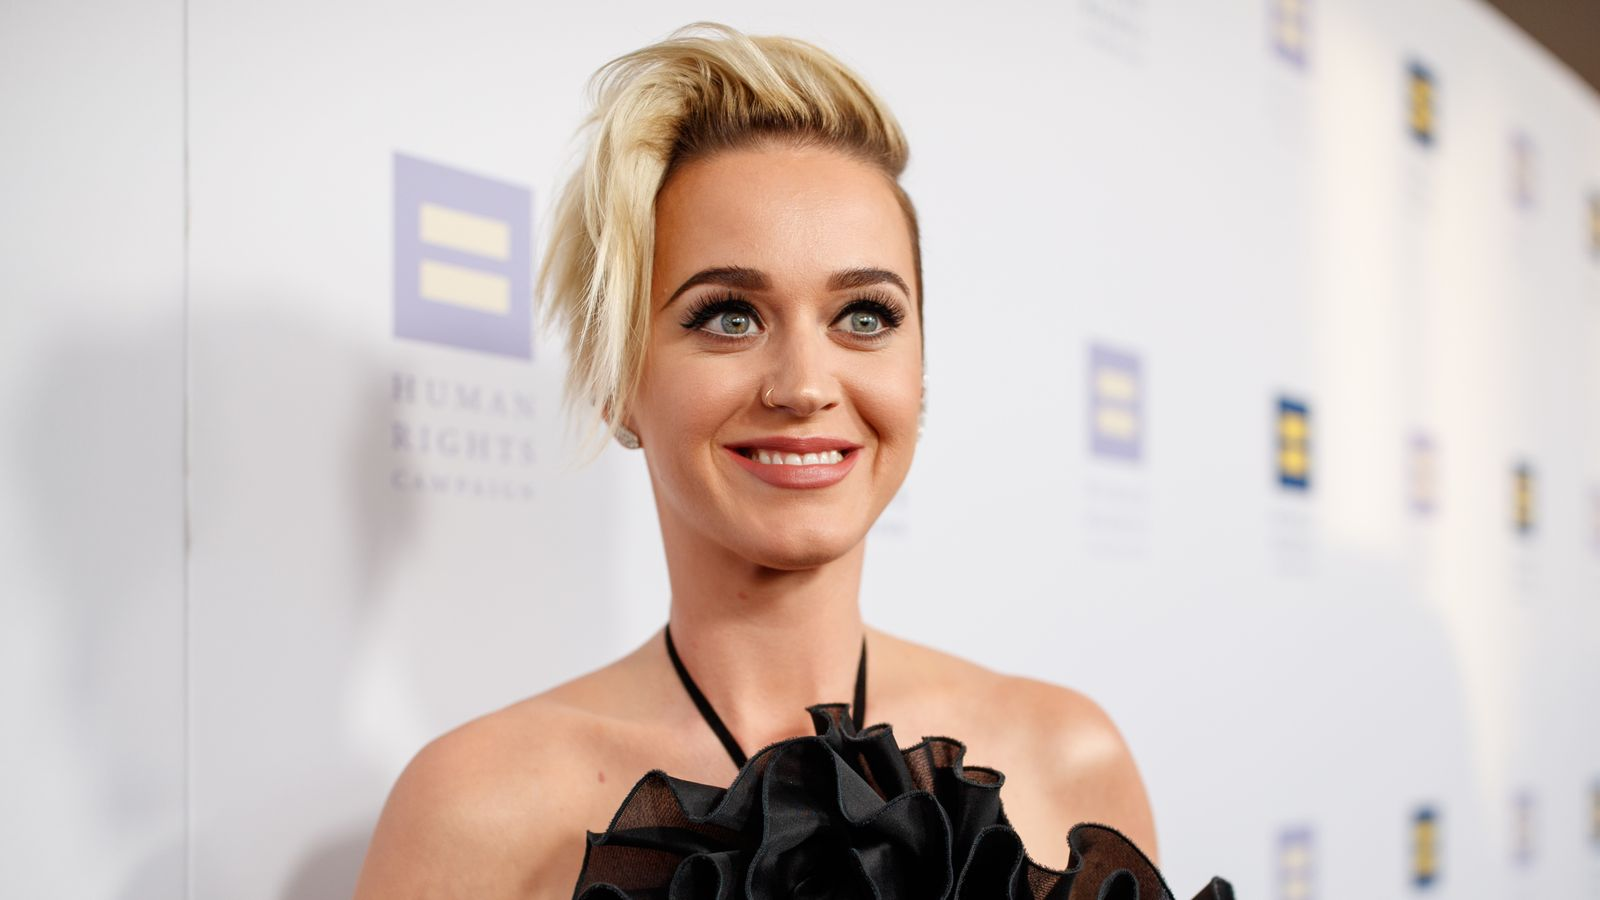 Katy Perry wins millions in damages over legal battle with nuns